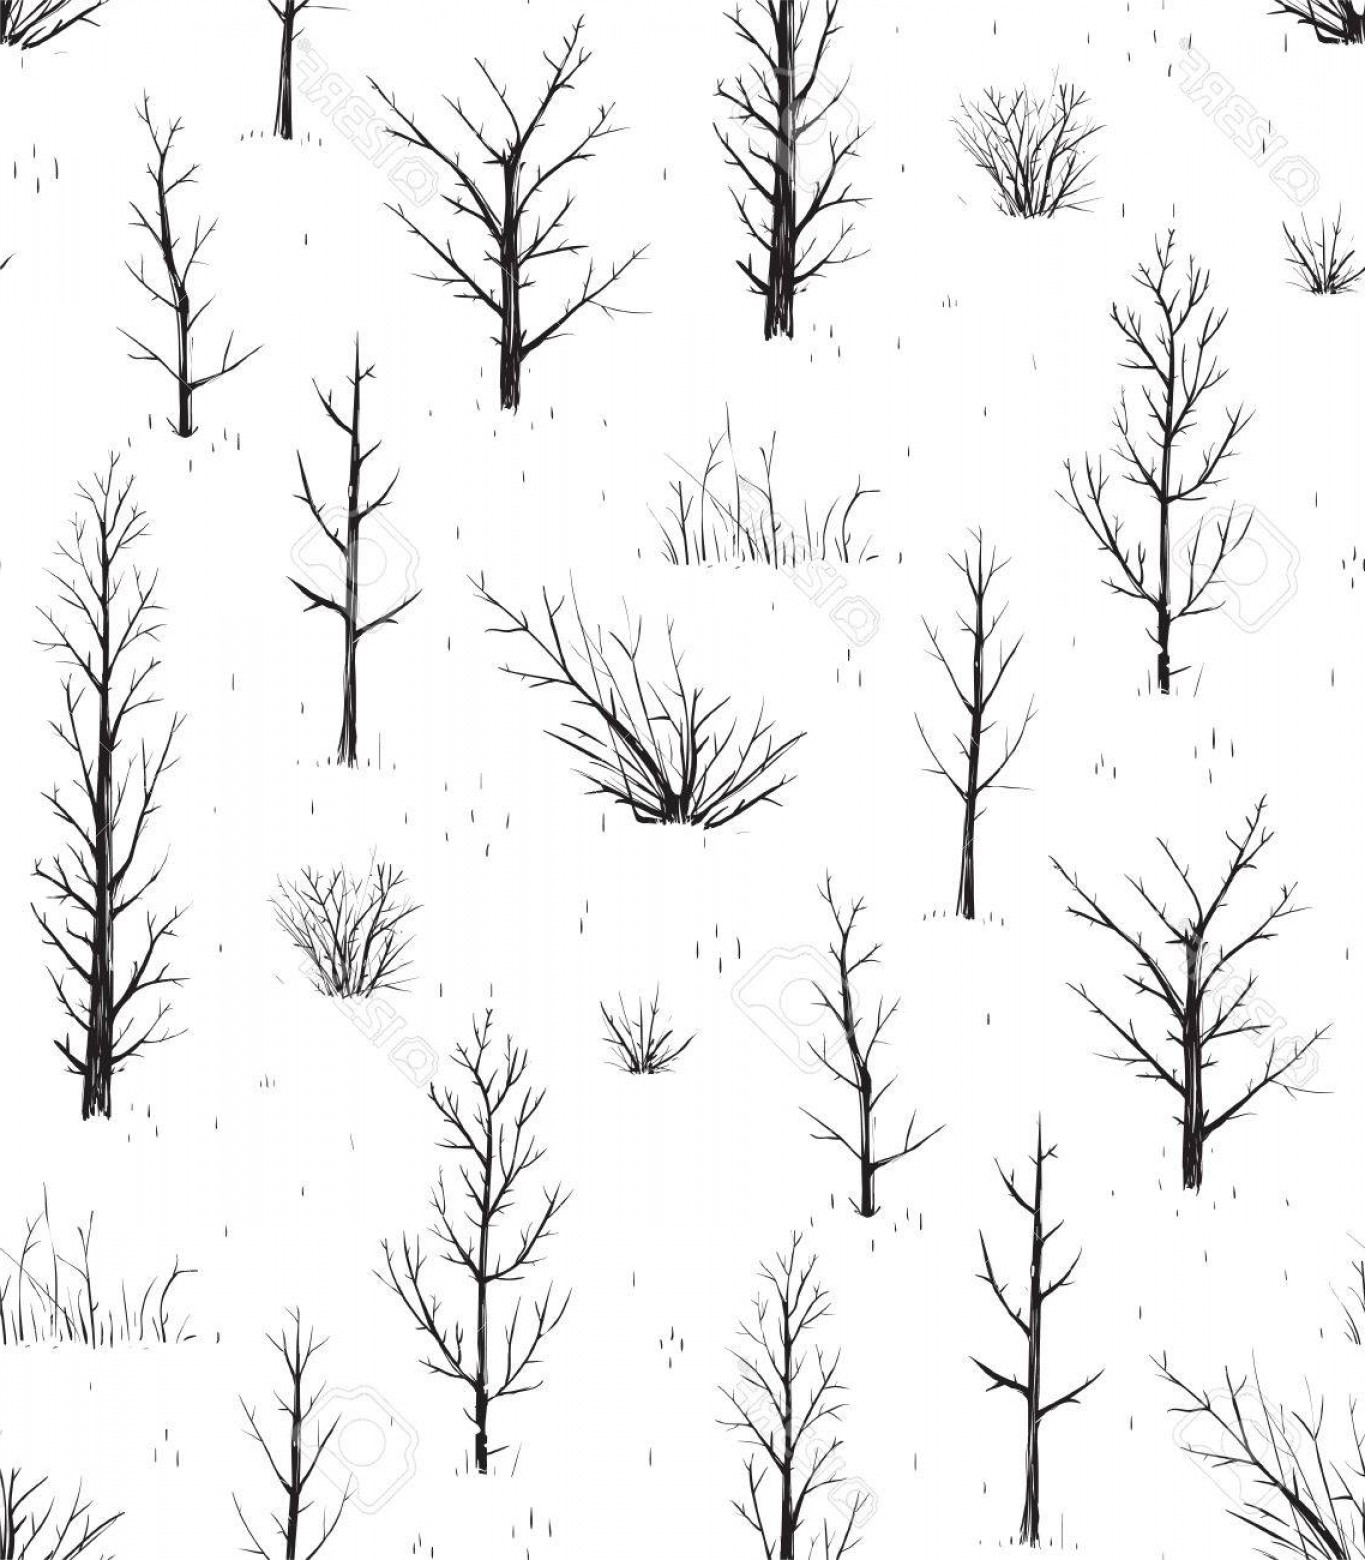 Scratch Y Drawing Vector: Photostock Vector Scratchy Trees Black Silhouettes Seamless Pattern Sketchy Background Of Freehand Trees Drawing Vecto